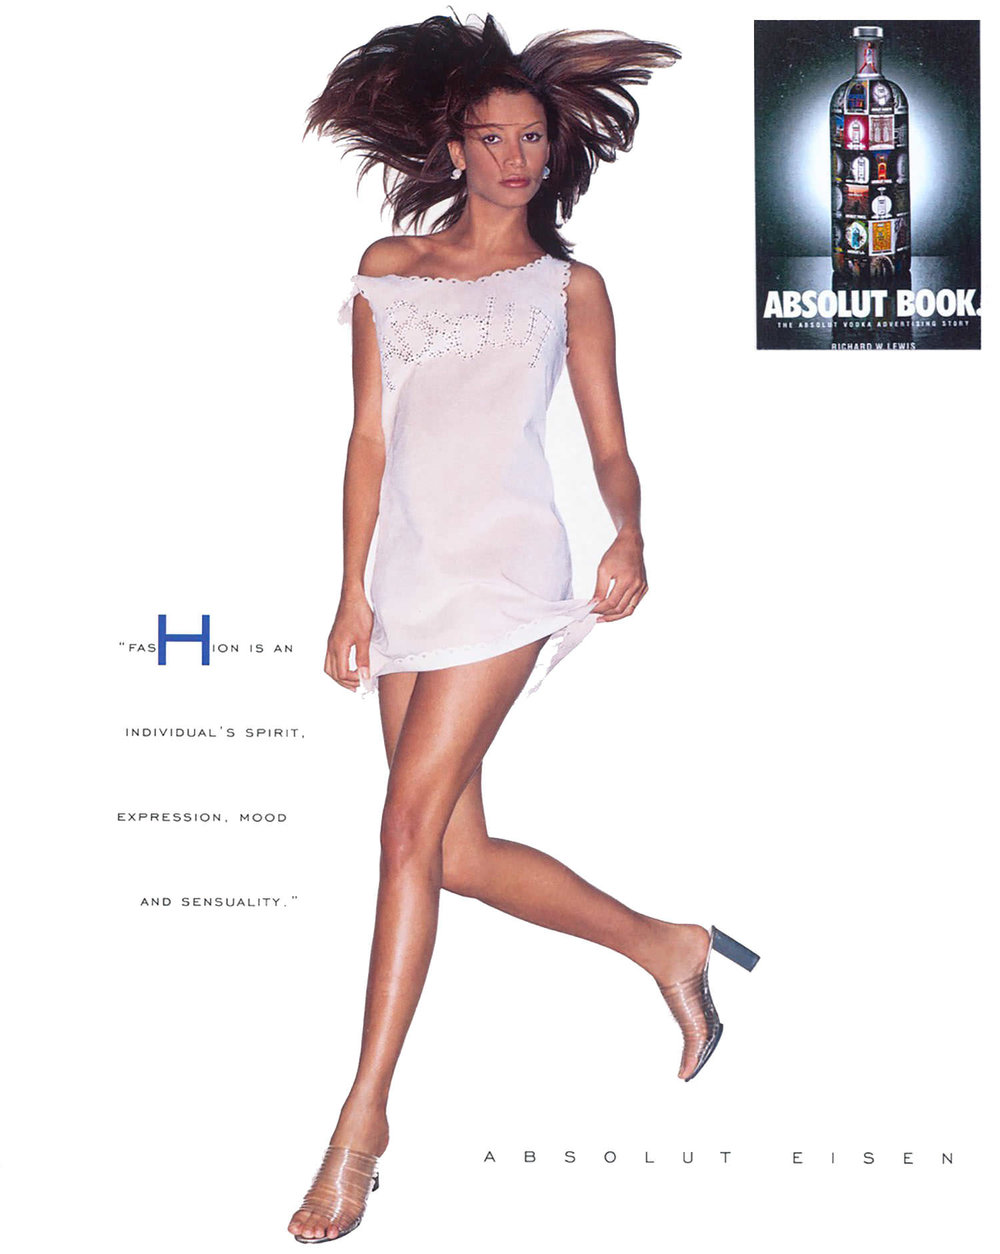 ABSOLUT EISEN In 1994, ABSOULT VODKA commissioned Eisen to custom-made a suede dress with a cut-out Absolut logo. The dress was part of a global collection that toured the world in 1998. The print ad campaign - with a new, understated Absolut logo - was in line with Eisen's minimalist aesthetic.